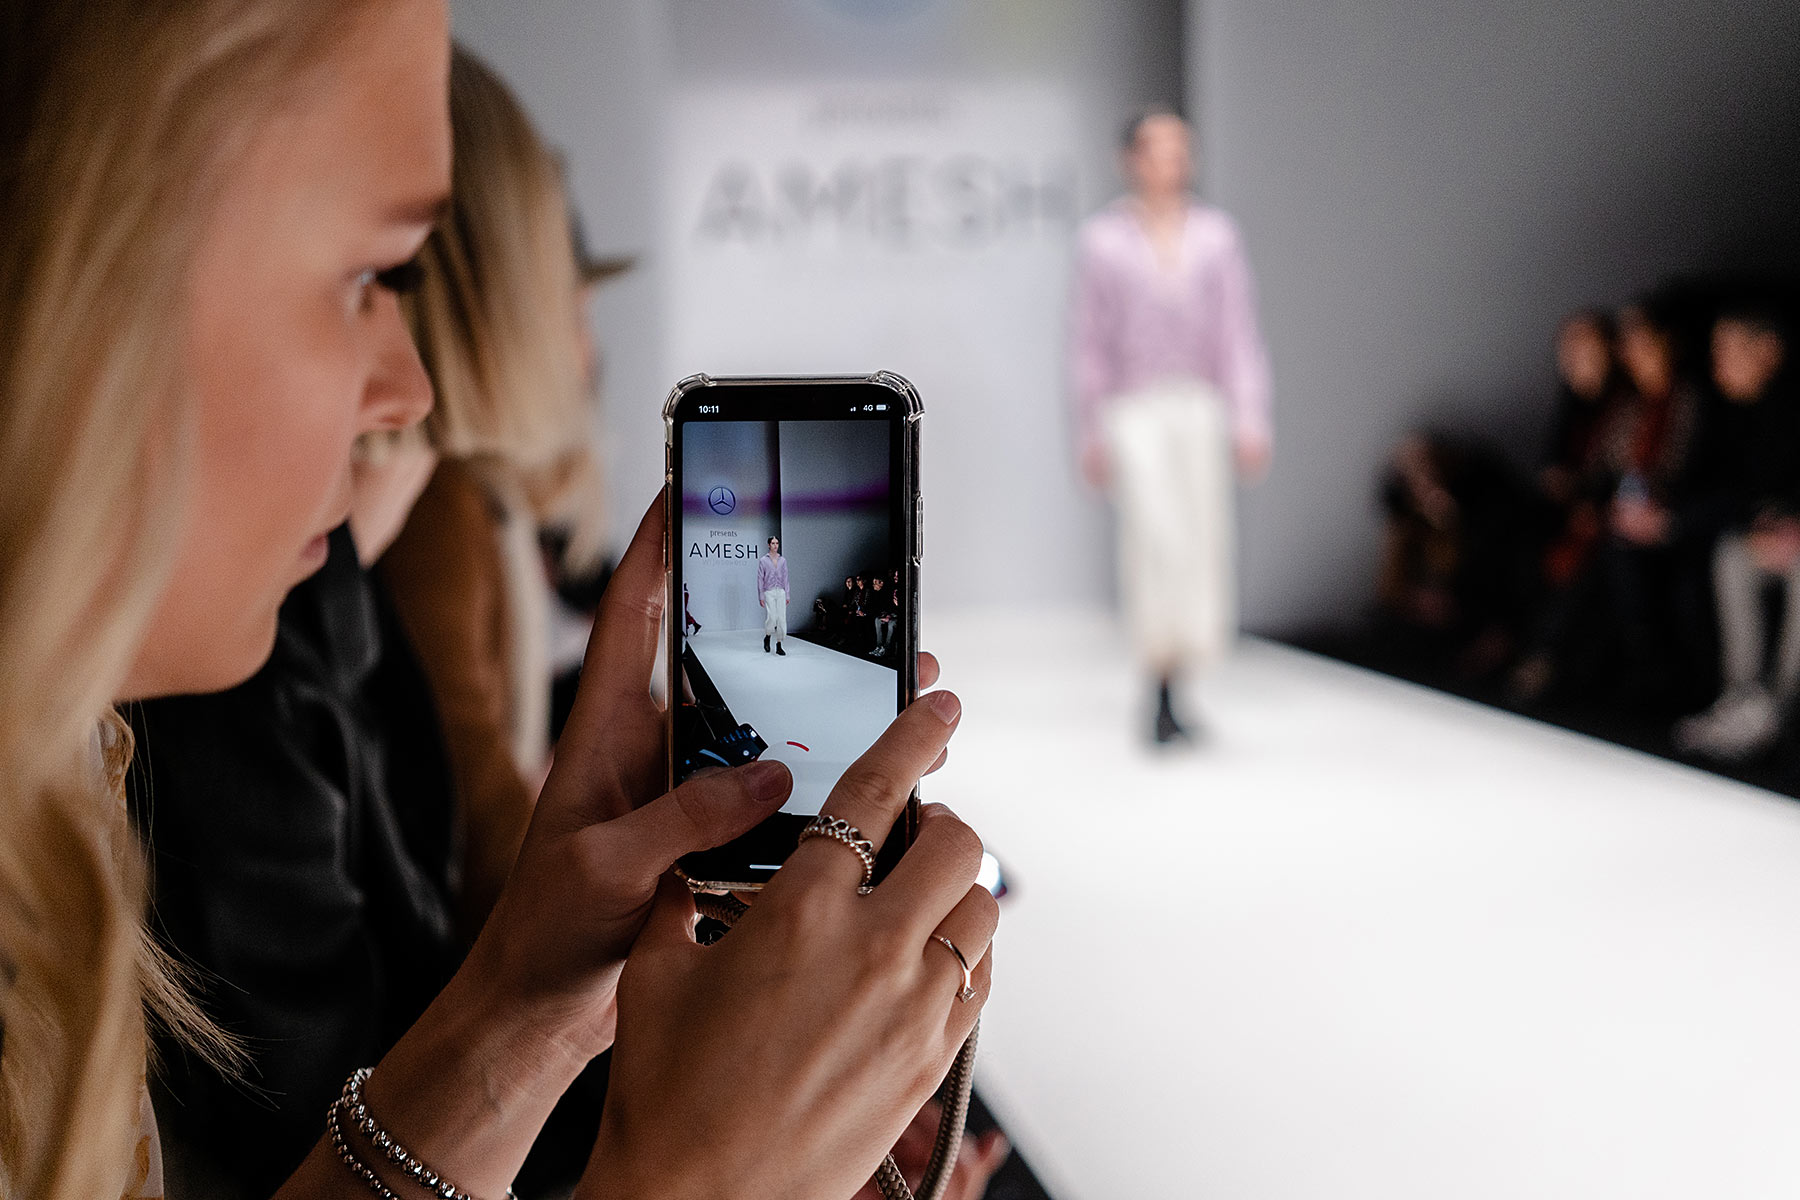 amesh wijesekera show berlin mbfw fashion blogger sunnyinga